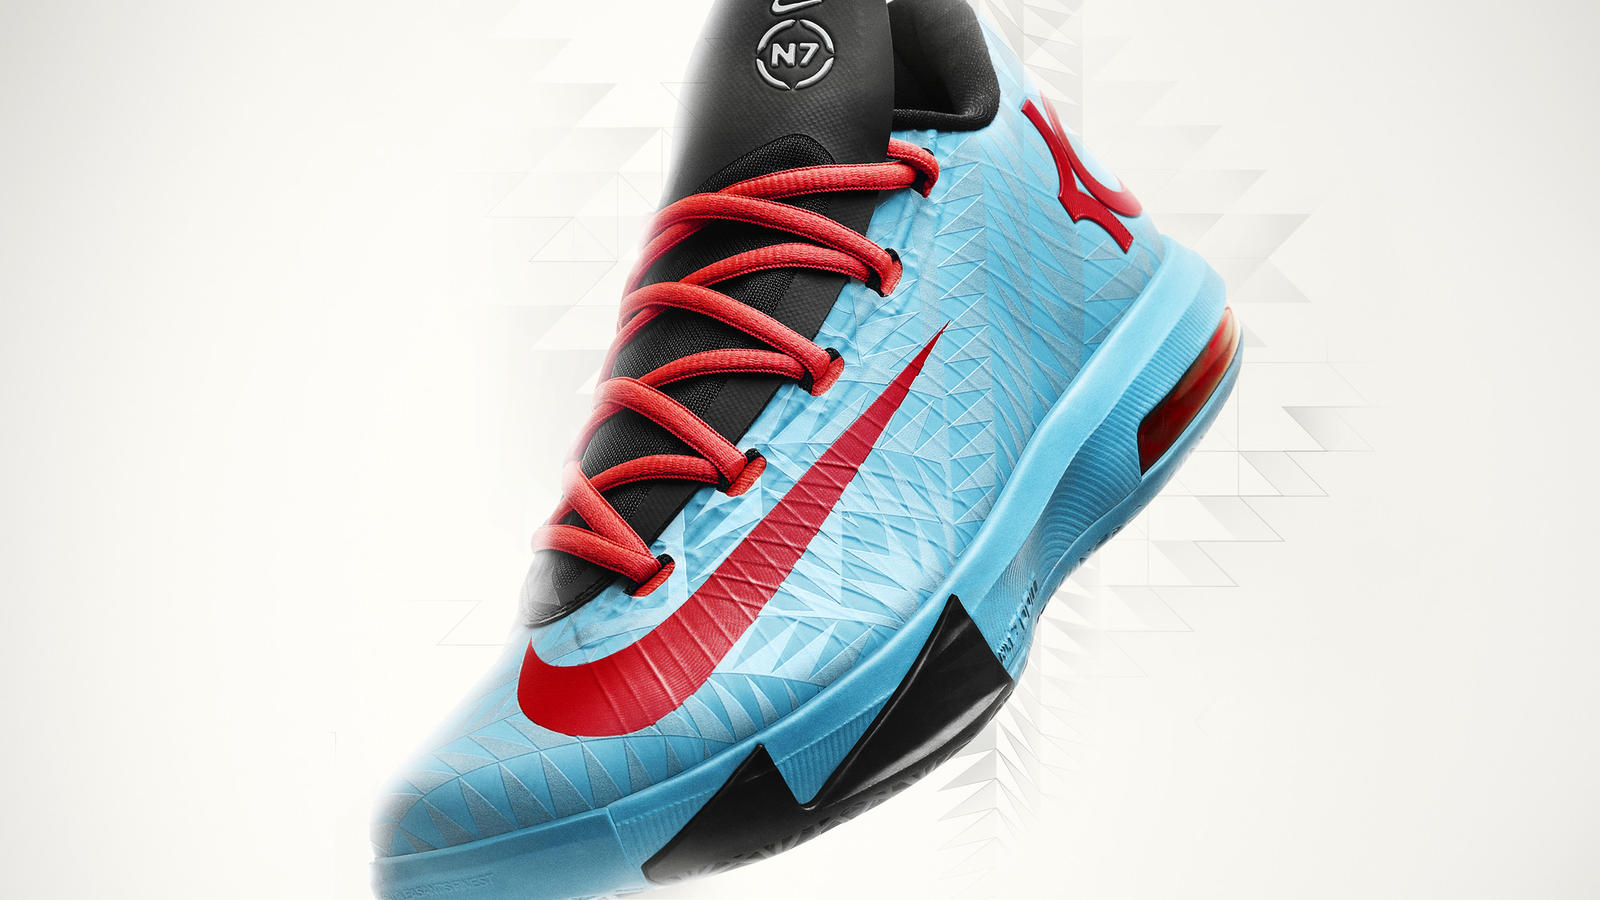 best cheap f1883 239f9 Ho13 N7 Kd Vi 626368 466 Hero